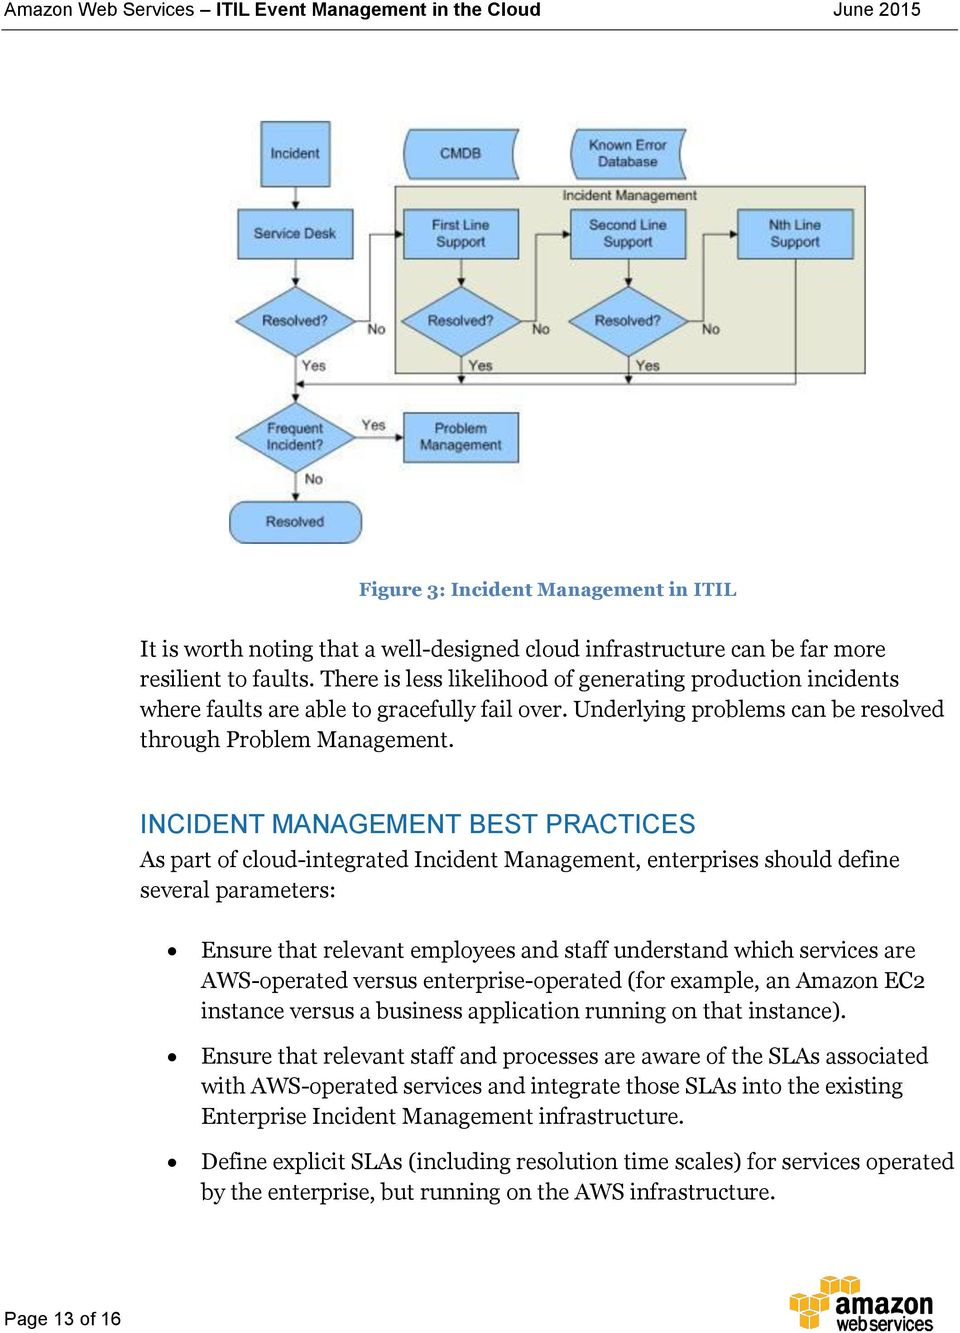 INCIDENT MANAGEMENT BEST PRACTICES As part of cloud-integrated Incident Management, enterprises should define several parameters: Ensure that relevant employees and staff understand which services